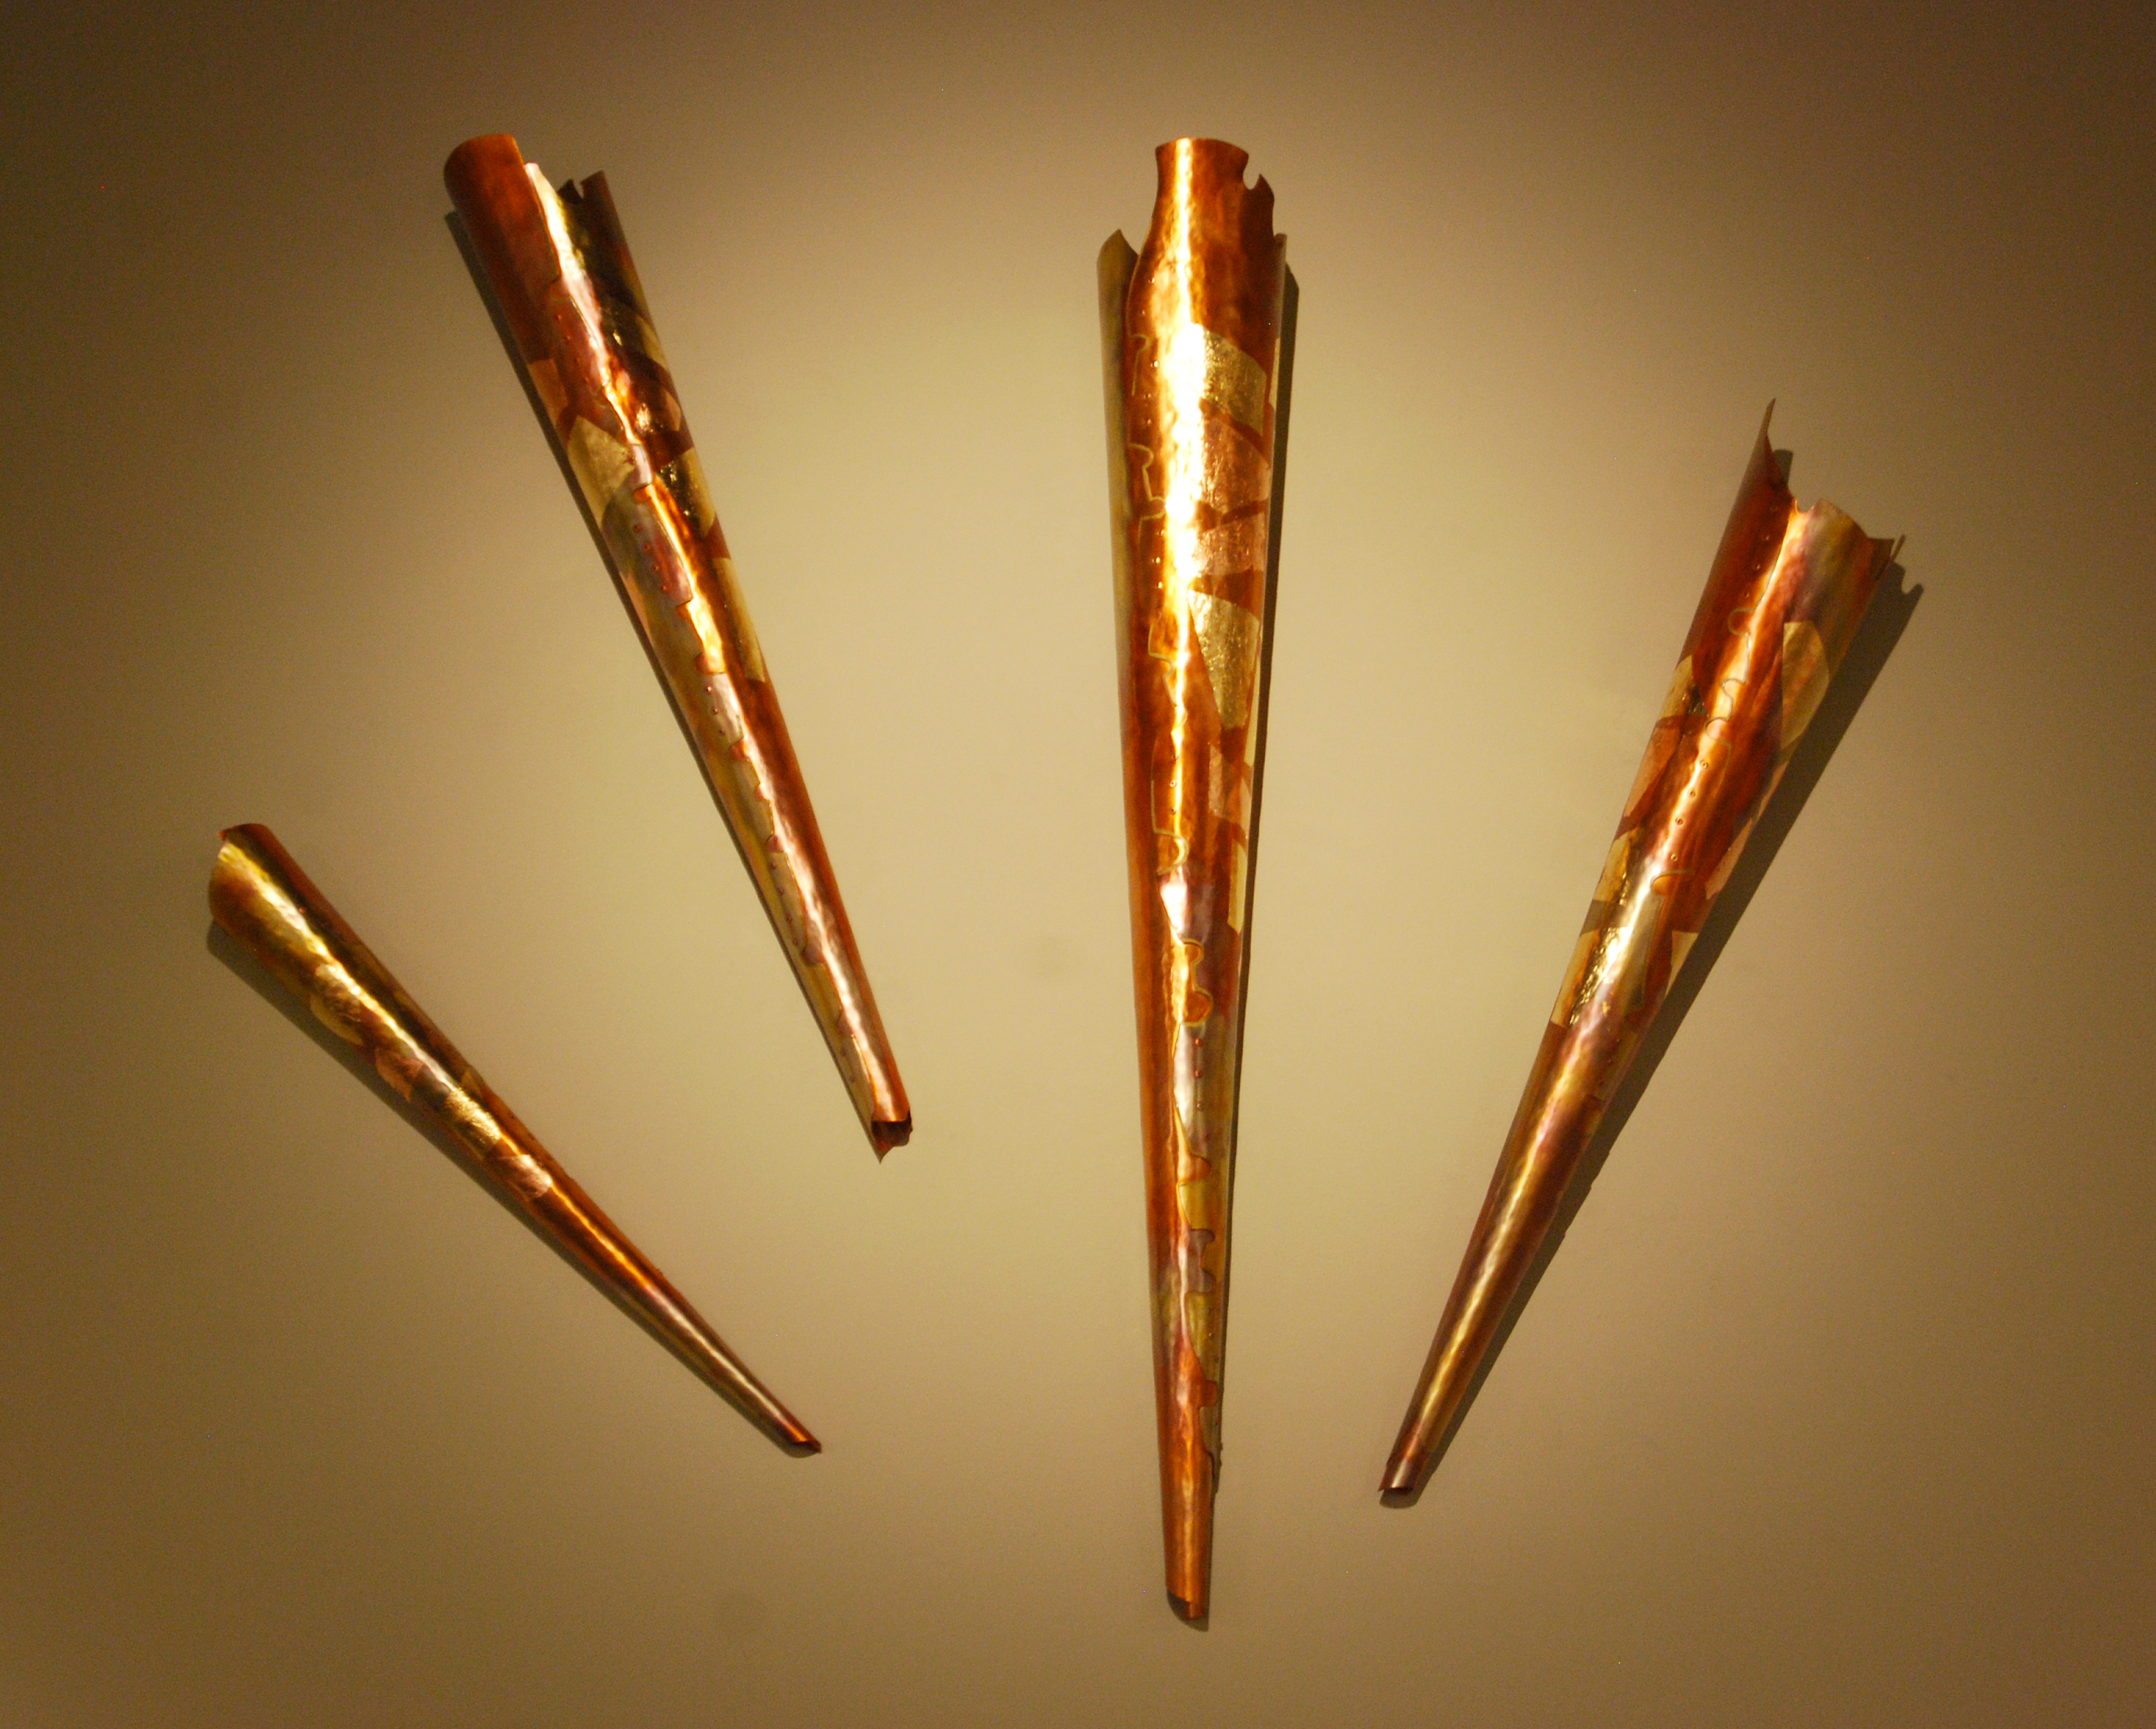 Thomas Markusen Copper Art at a Scottsdale Art Gallery | The ...